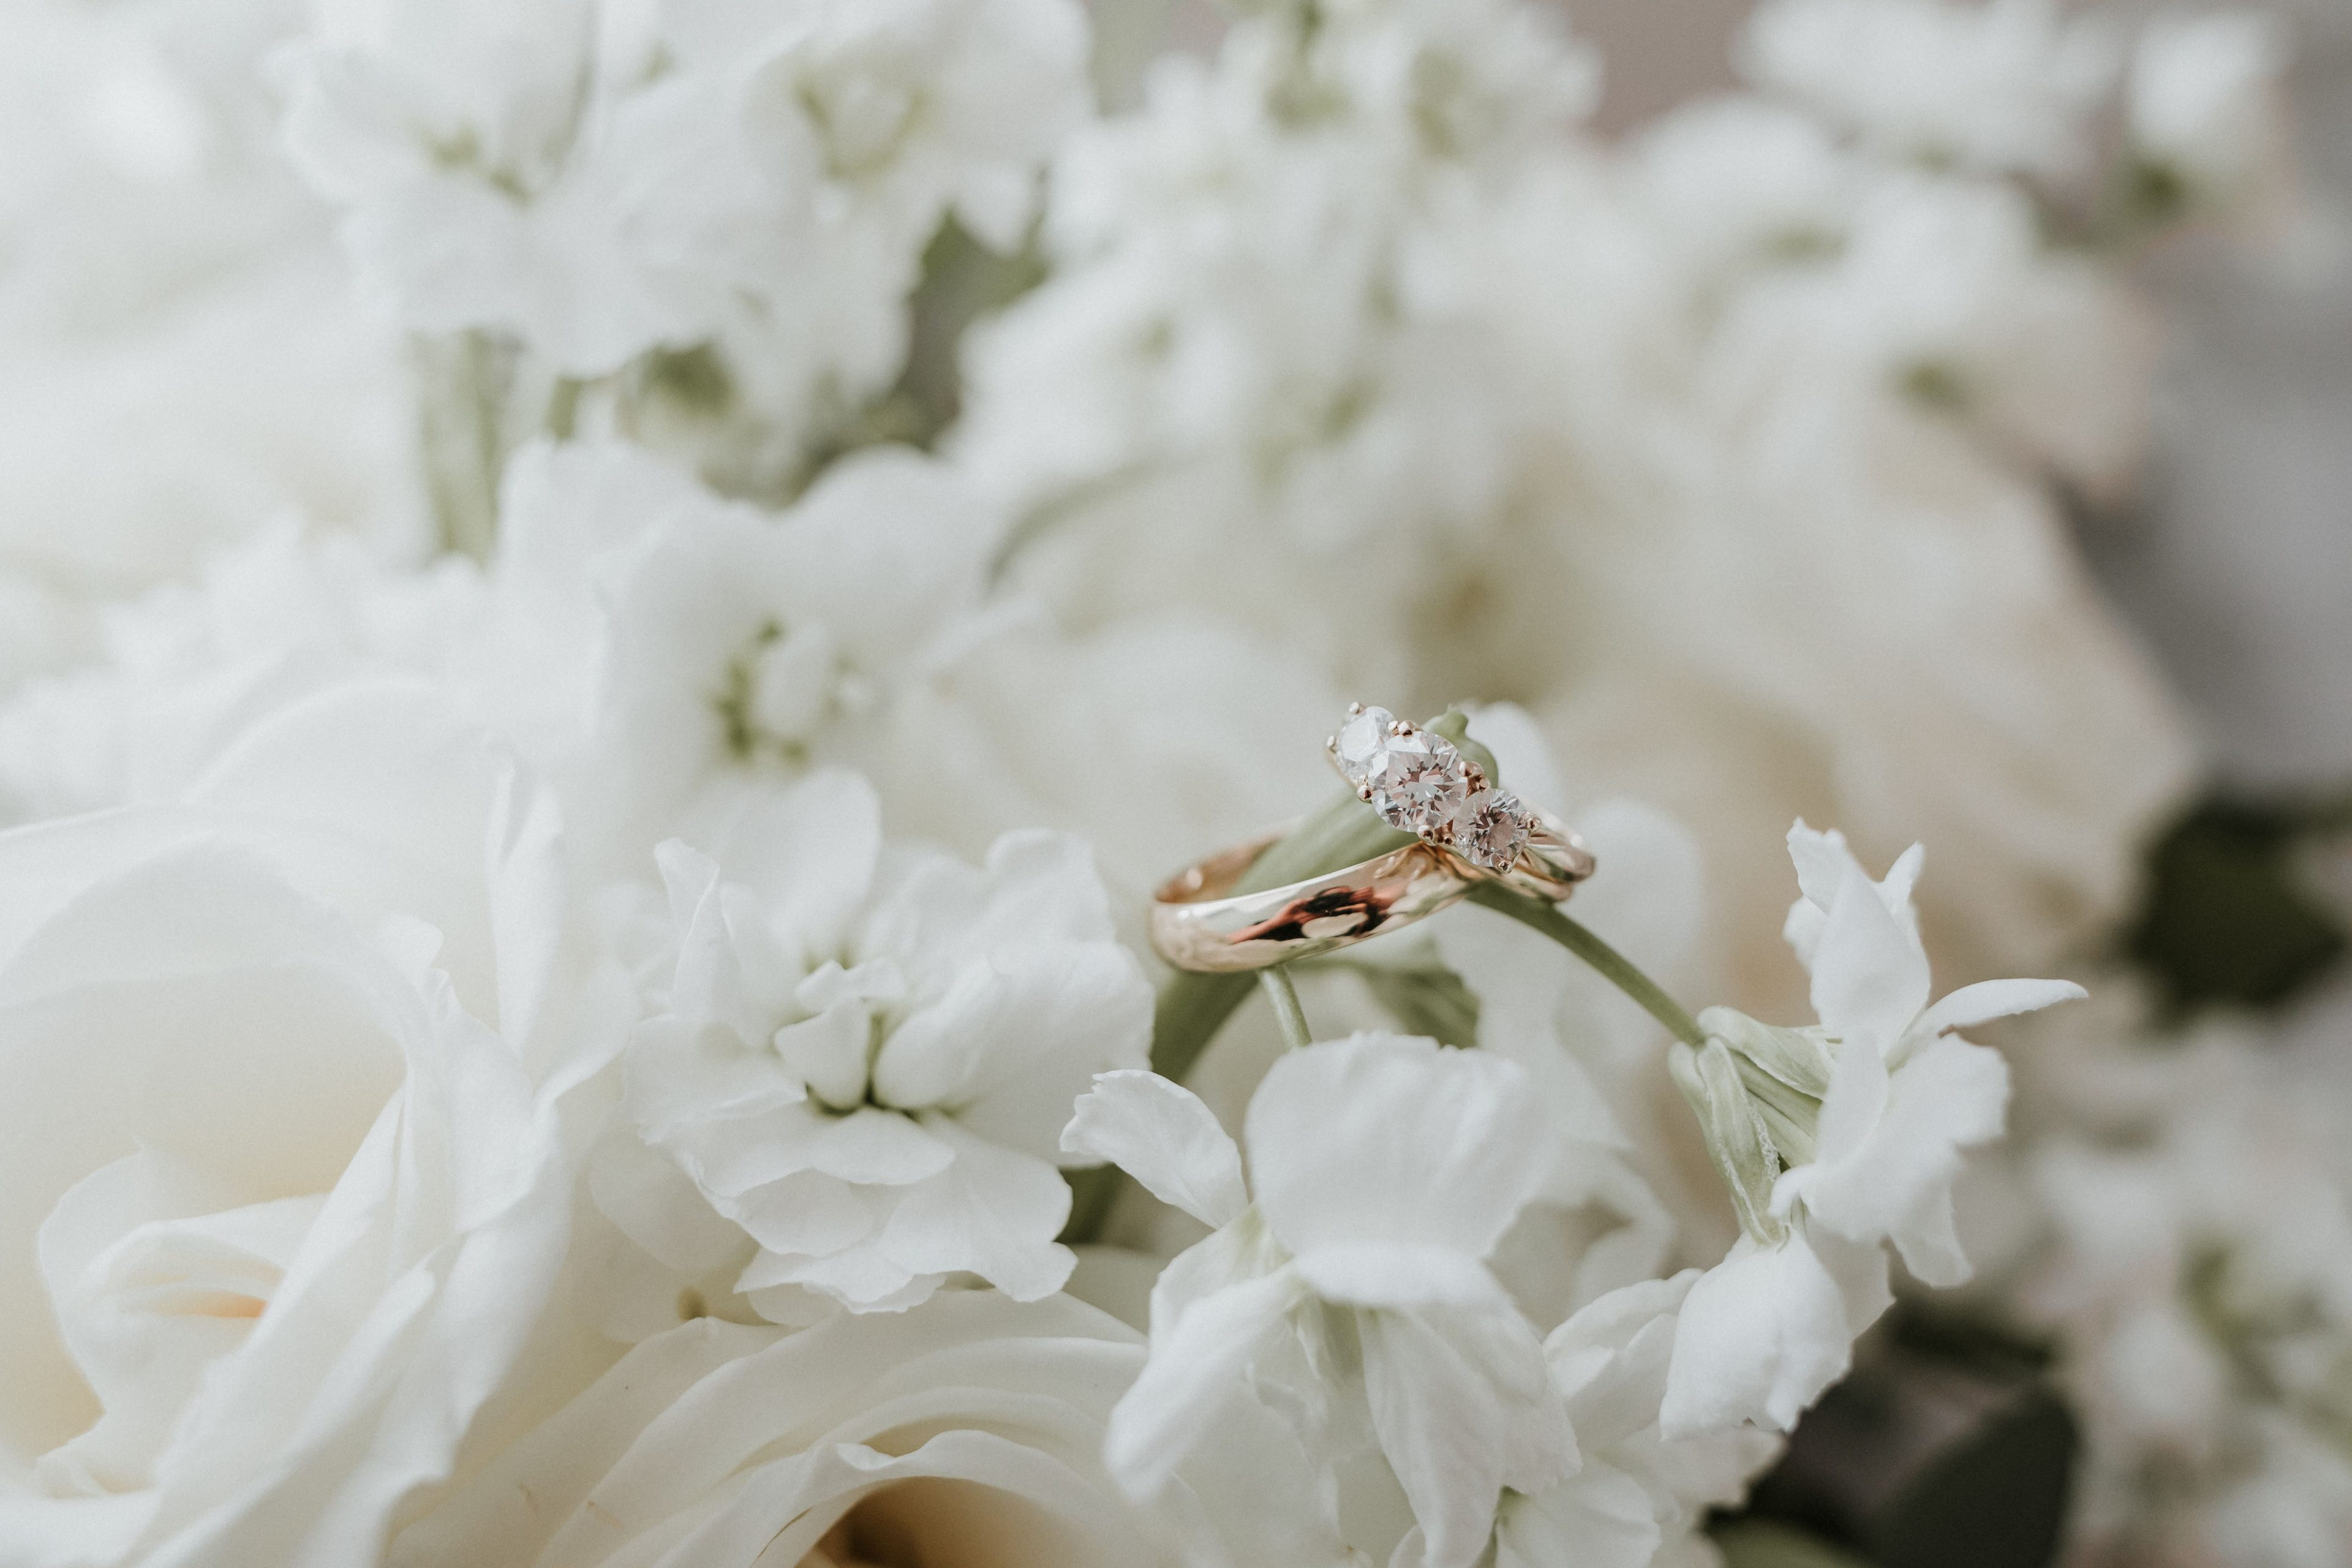 Detail shot of bridal jewelry captured by Shutter Owl Photography for a wedding at The Ivy Place